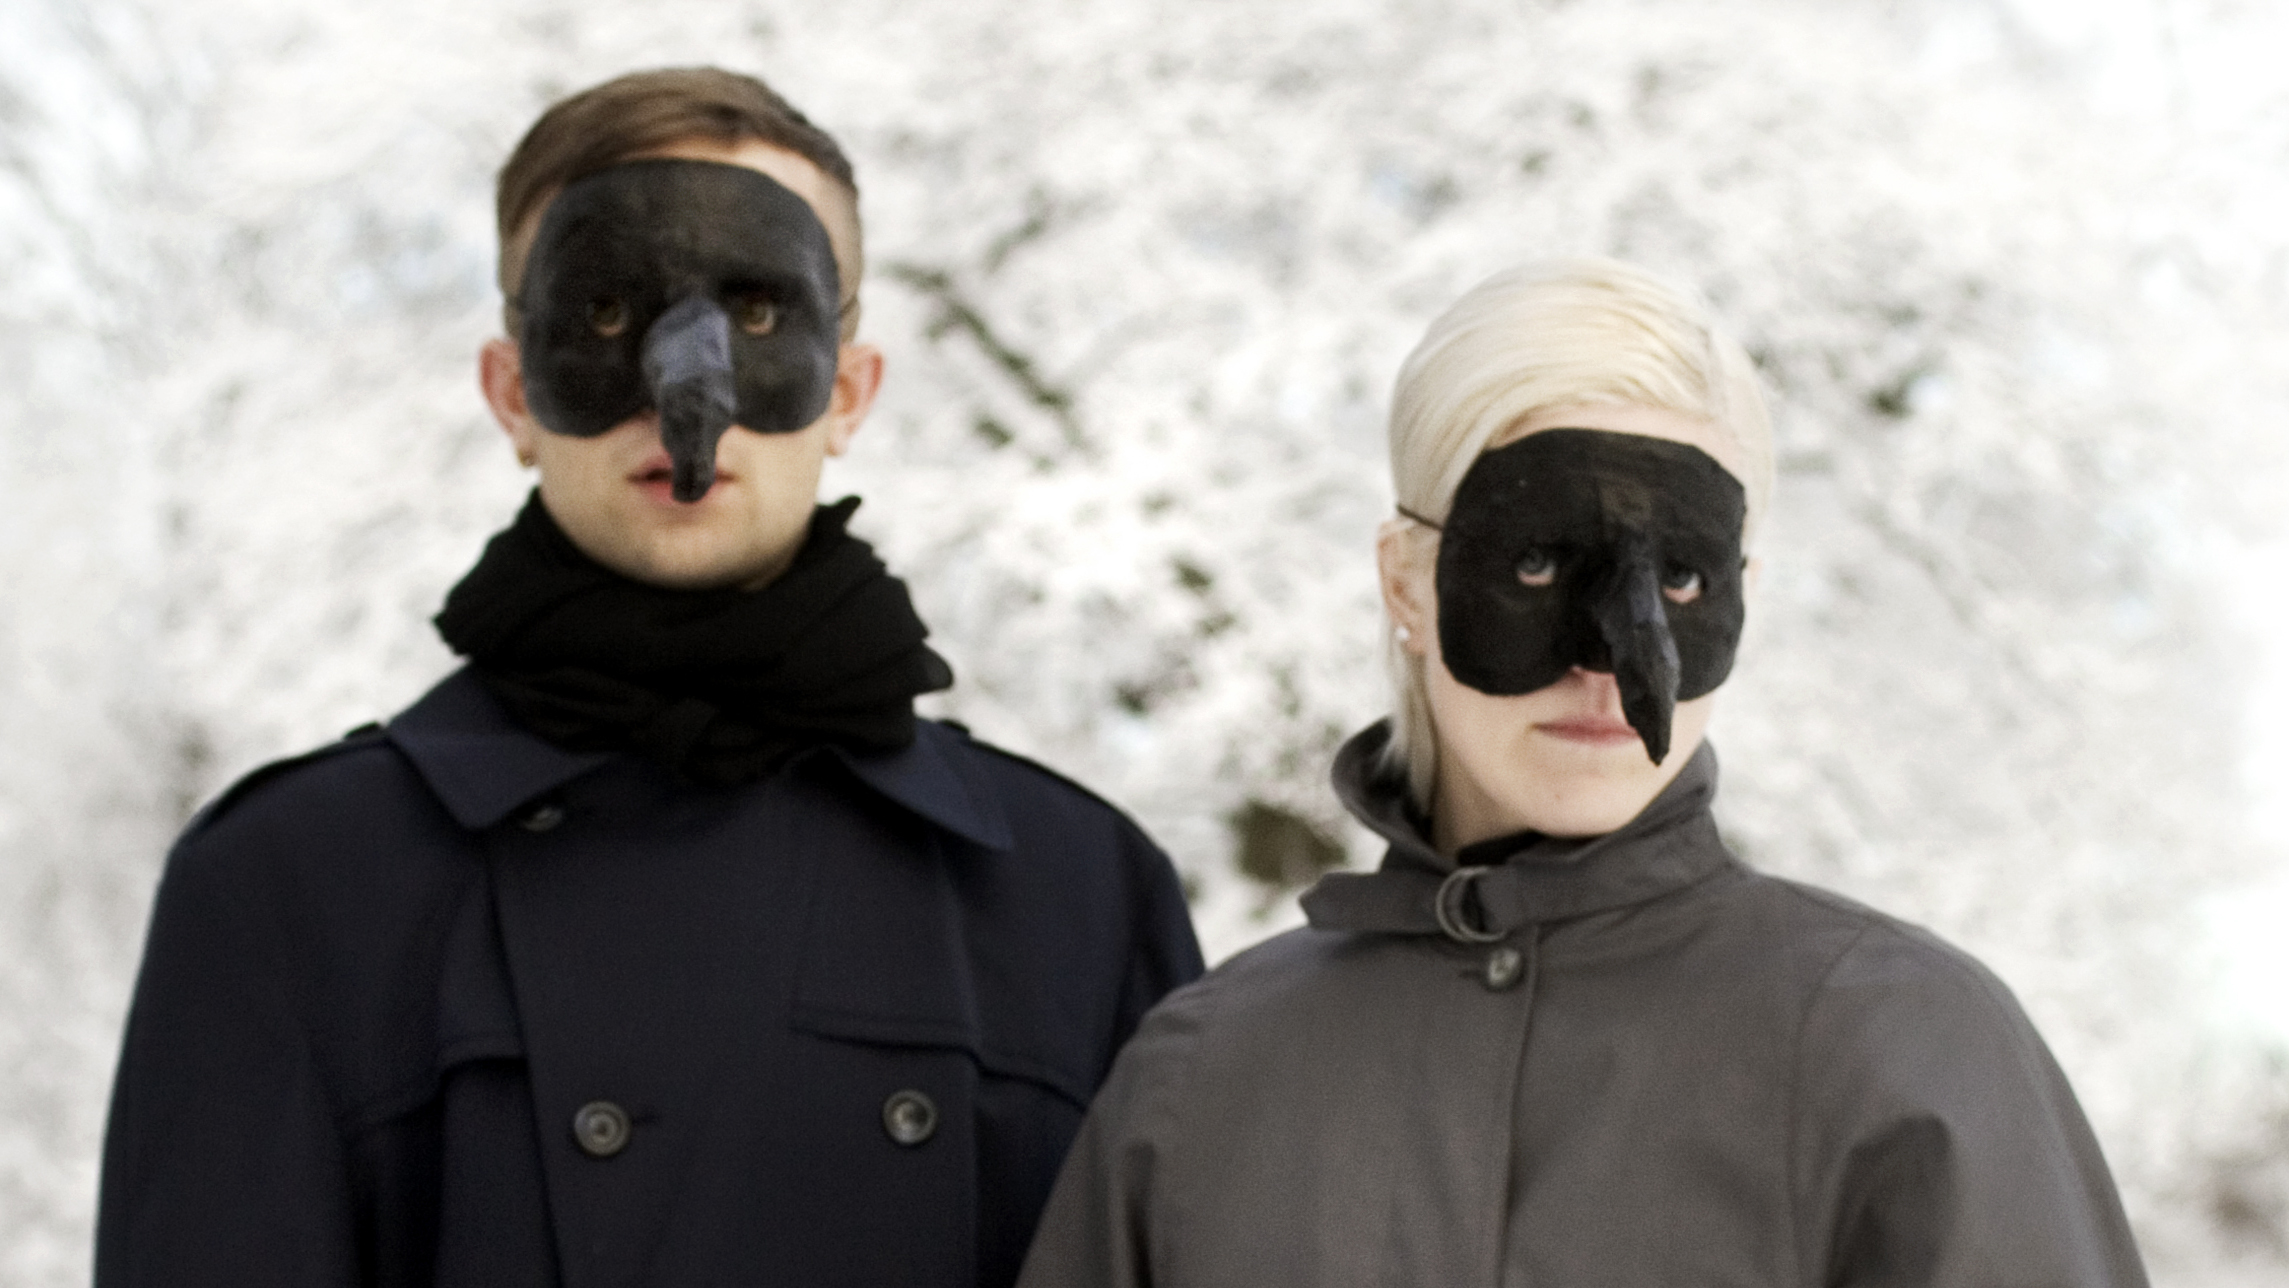 Olof and Karin Dreijer Andersson wearing their iconic Plague Doctor masks.